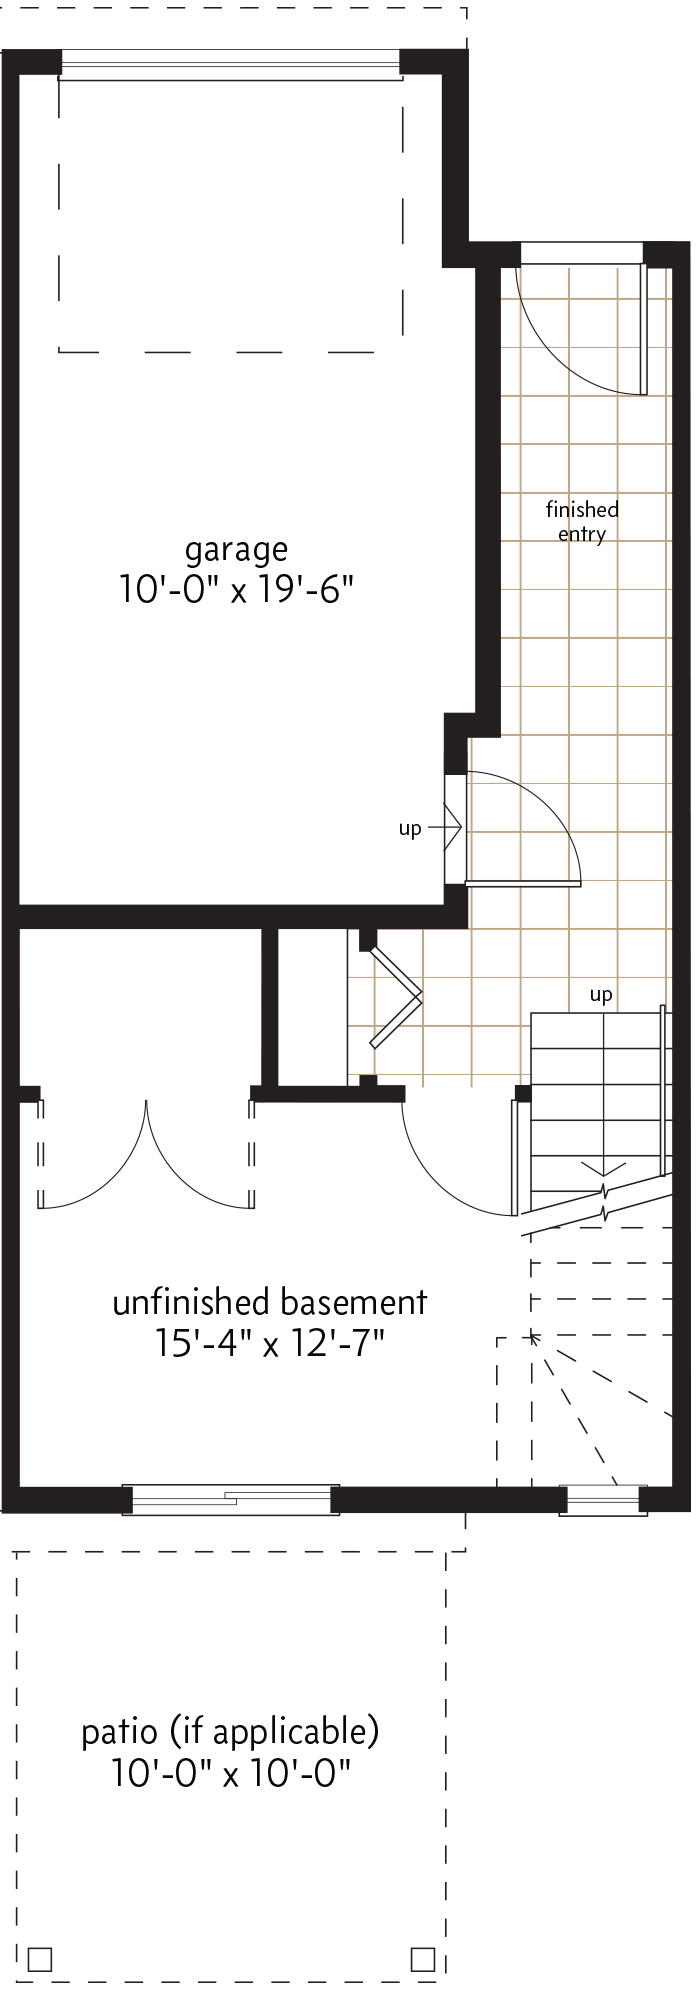 BASEMENT  |  104 SQ. FT.